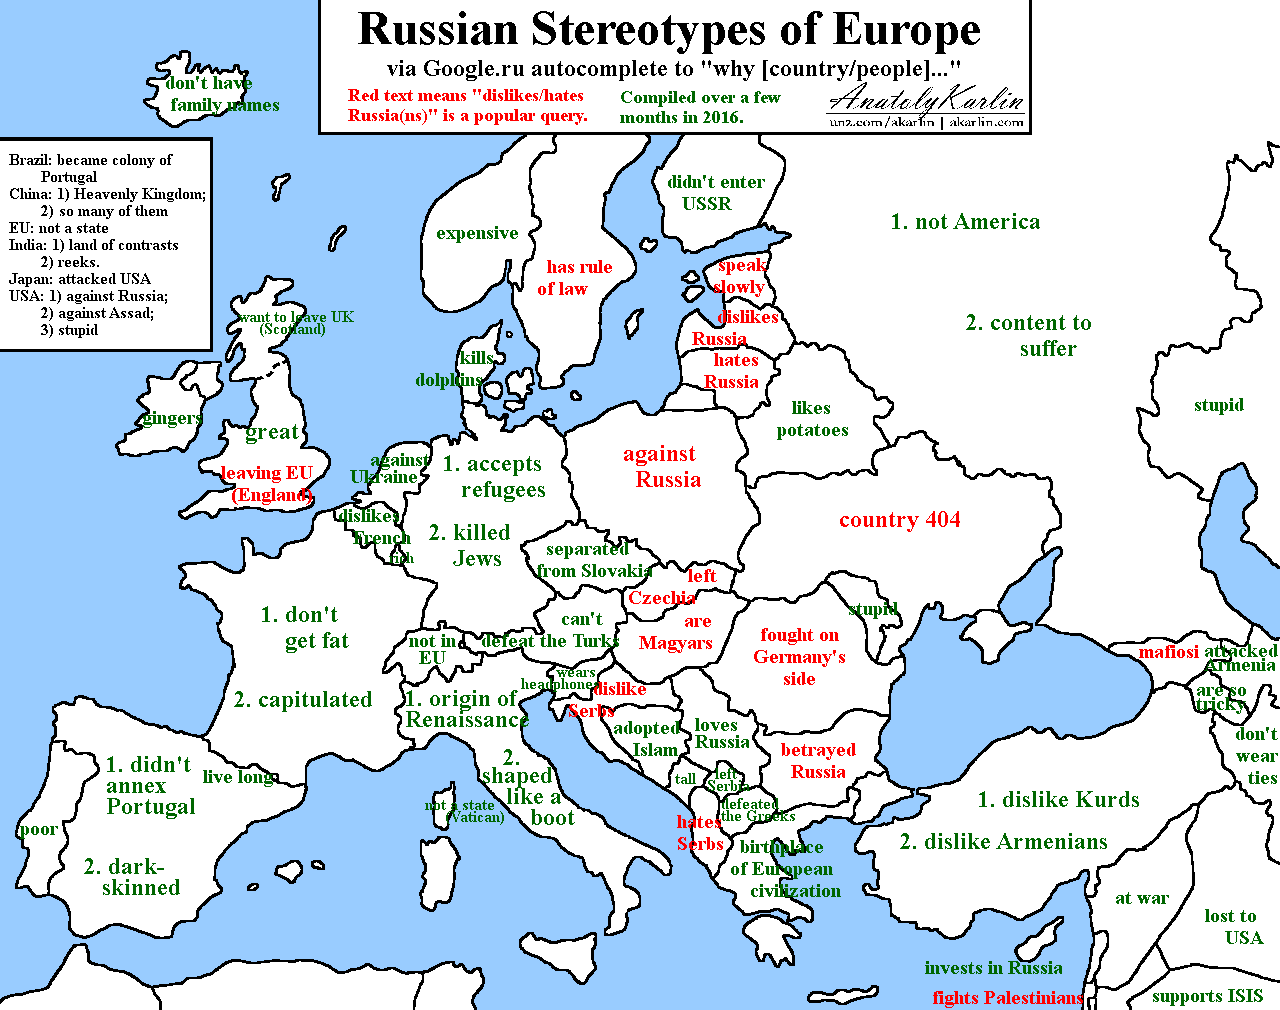 Russian stereotypes of Europe via Googleru autocomplete More